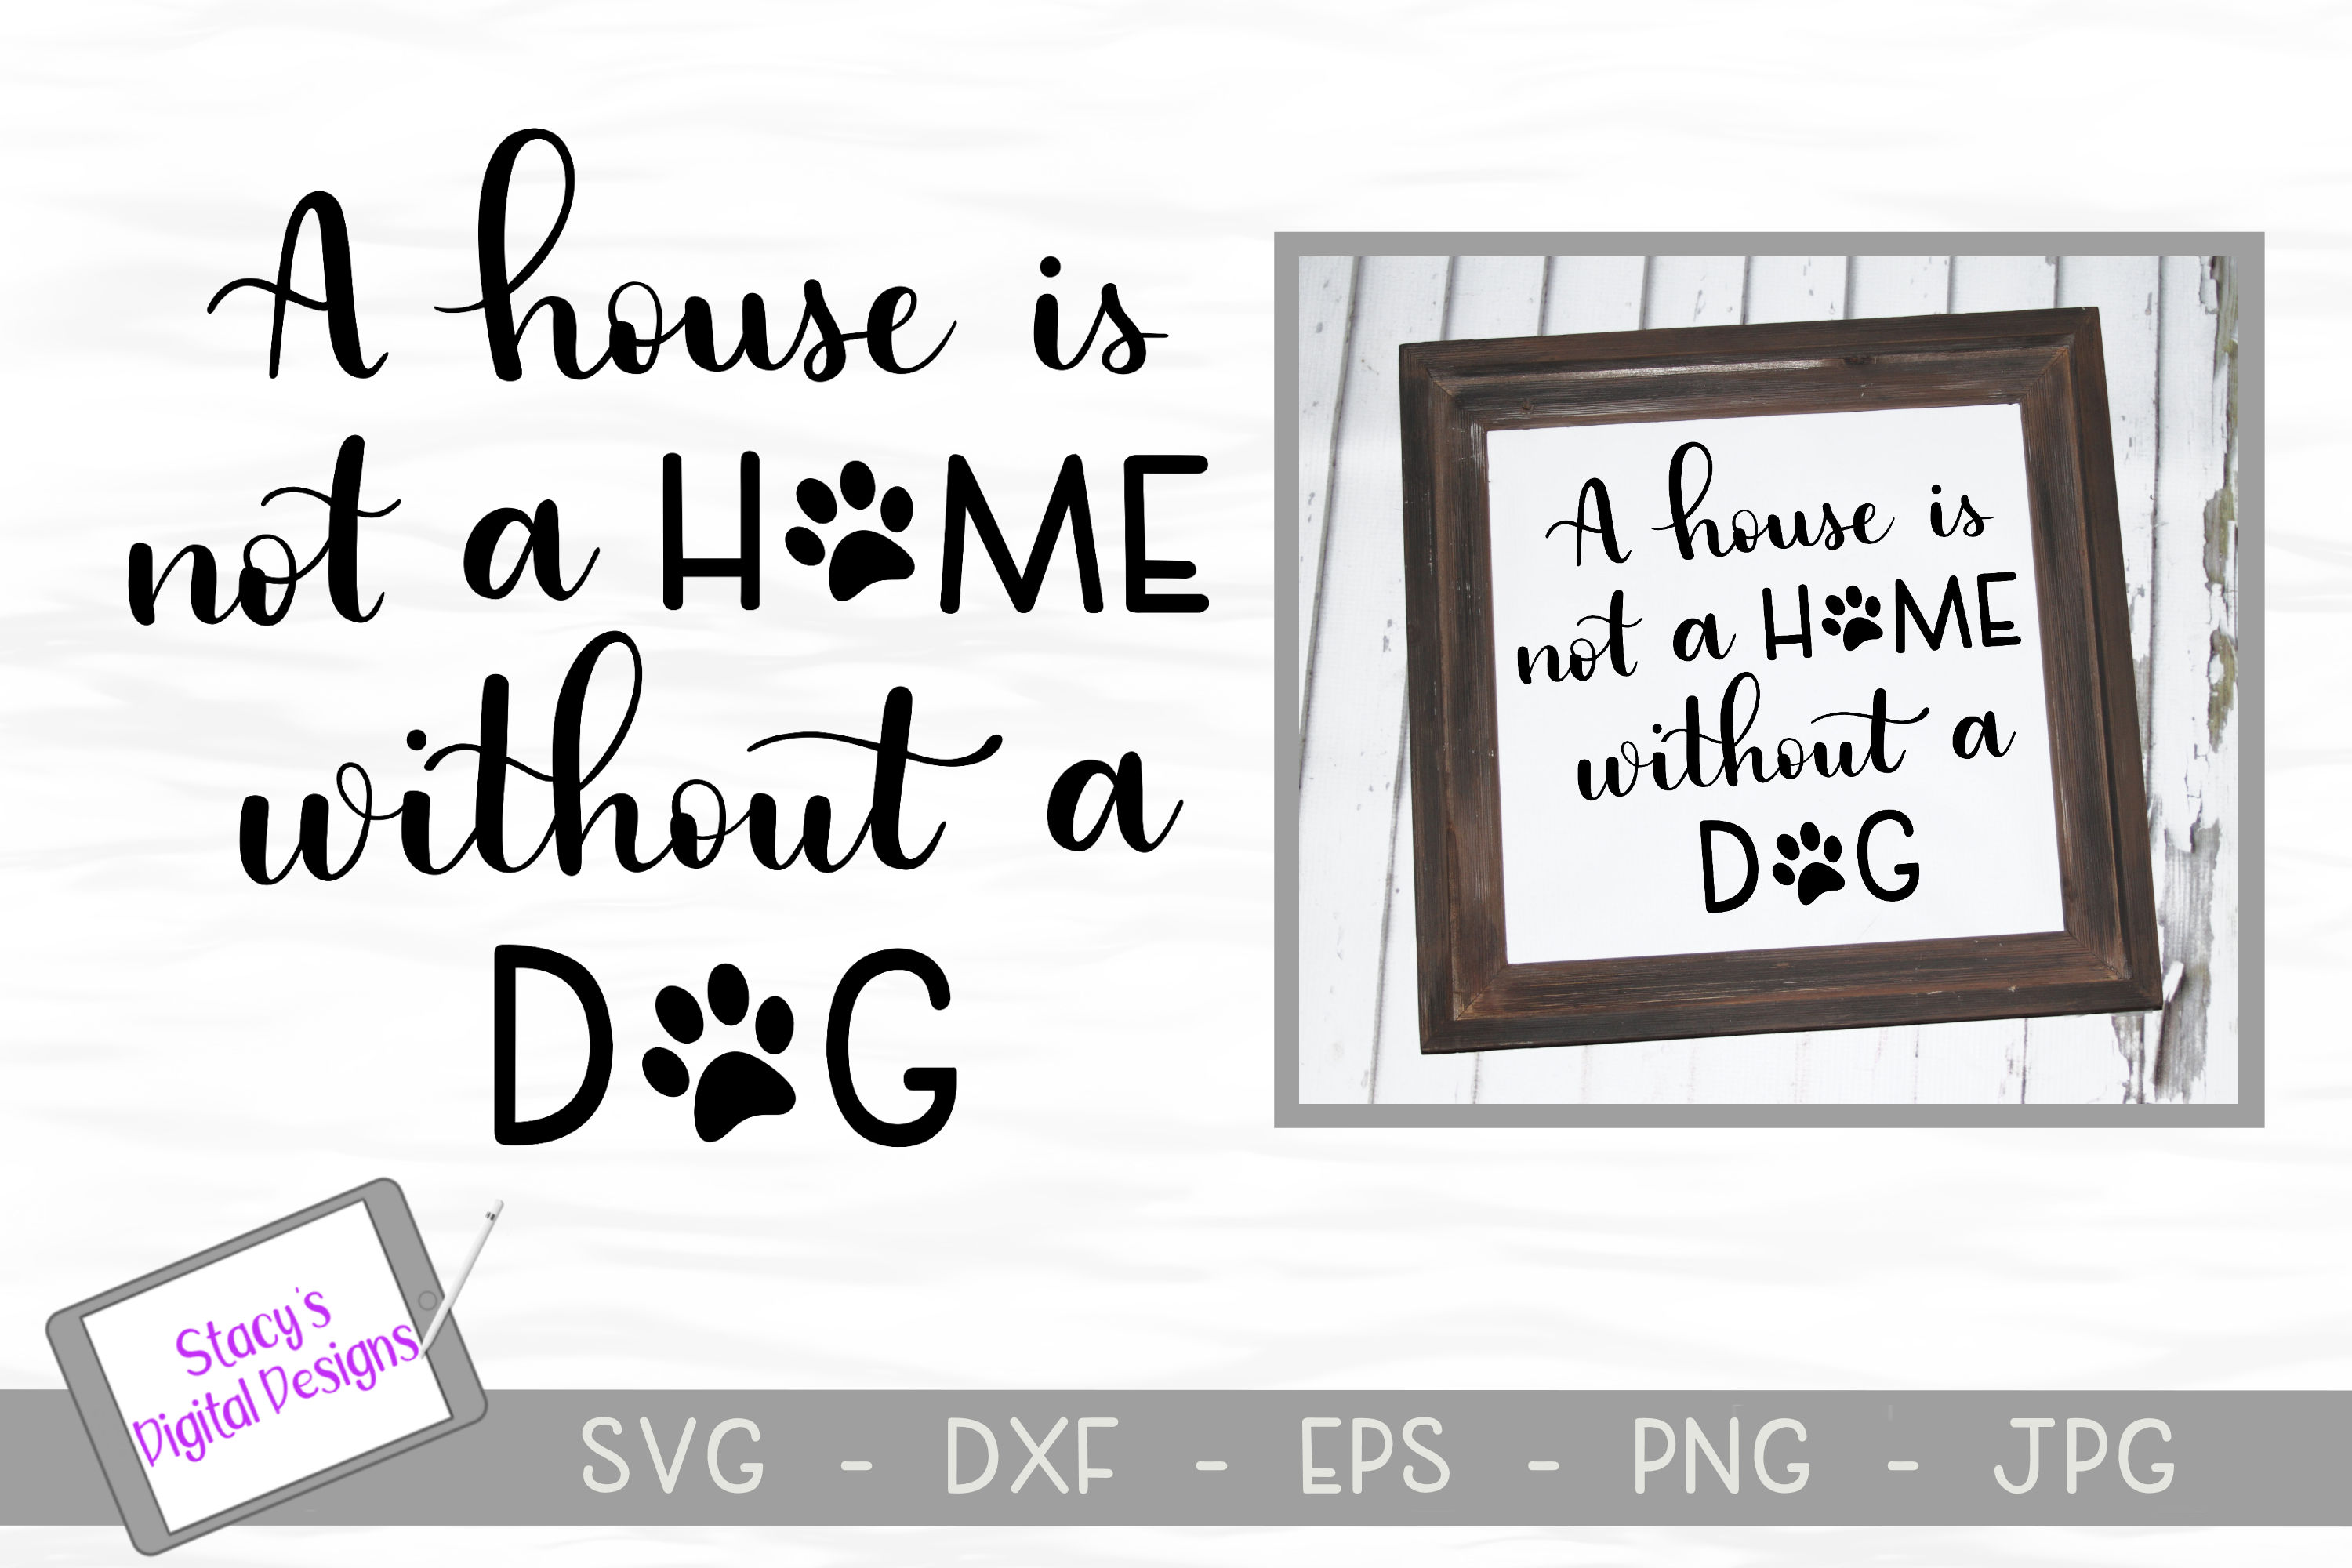 Dog SVG - A house is not a home without a dog, Handlettered example image 1